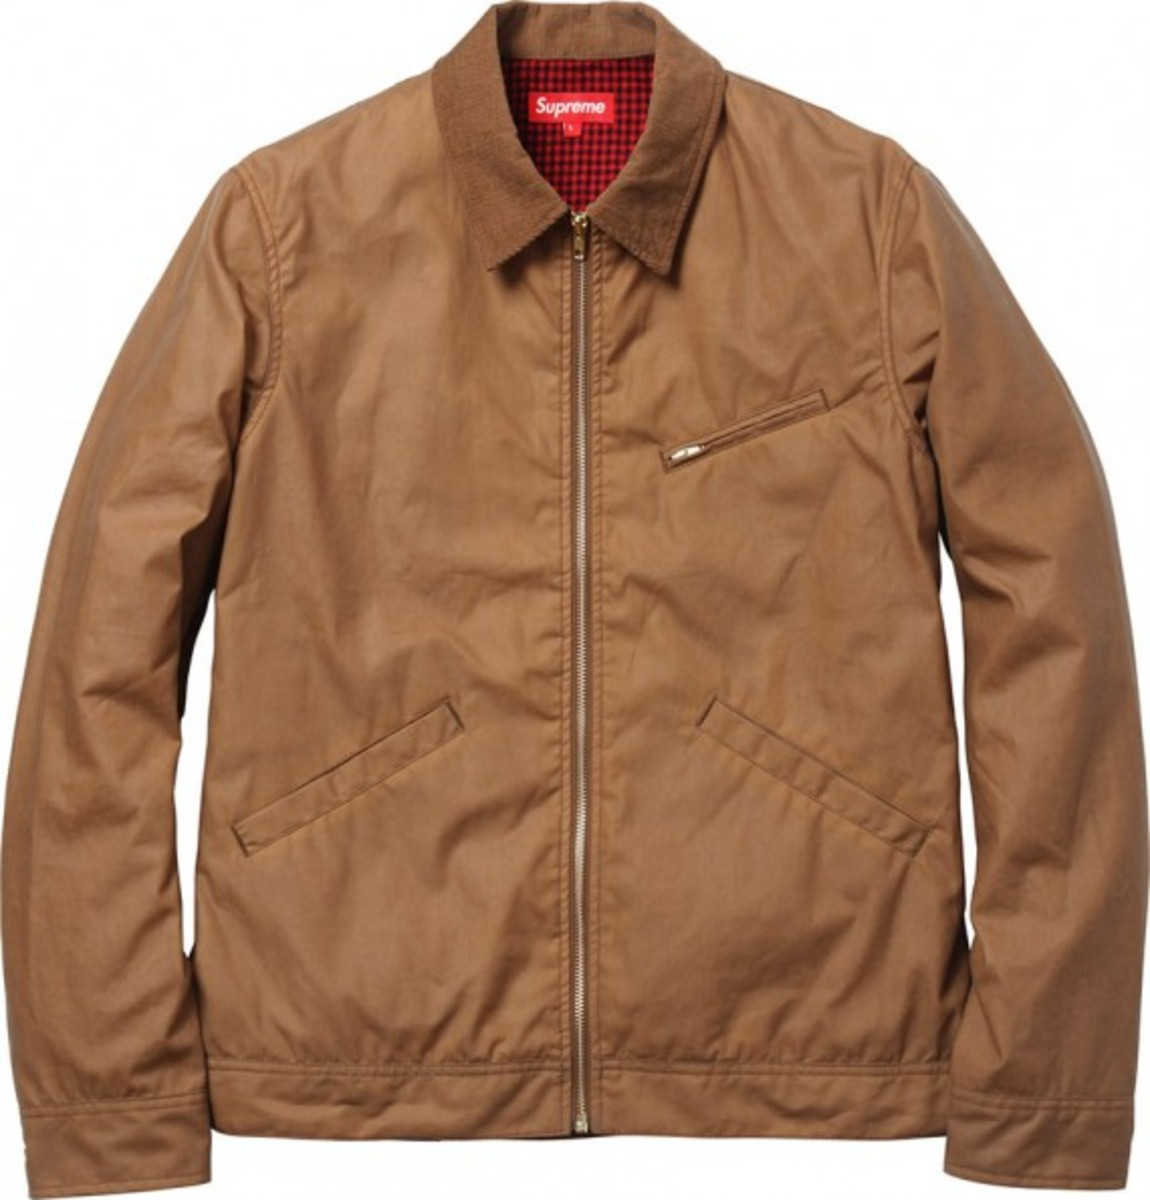 2-workers_jacket-zoom_1345455031